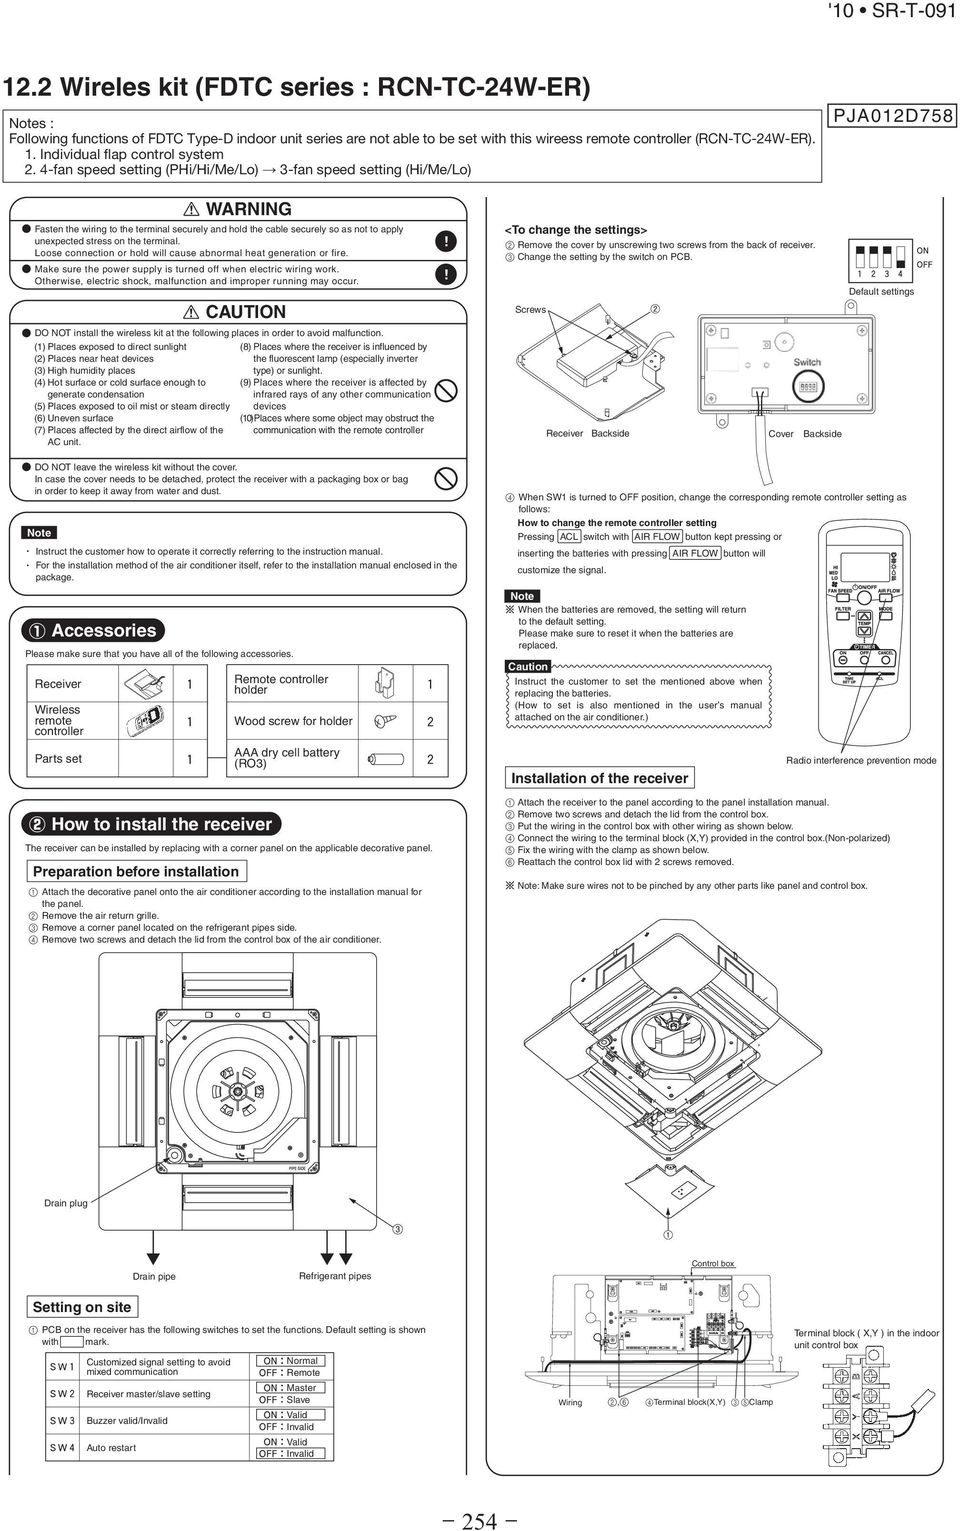 Technical Manual Inverter Residential Air Conditioners Split Ac Fan Wiring To Panel 4 Speed Setting Phi Hi Me Lo 3